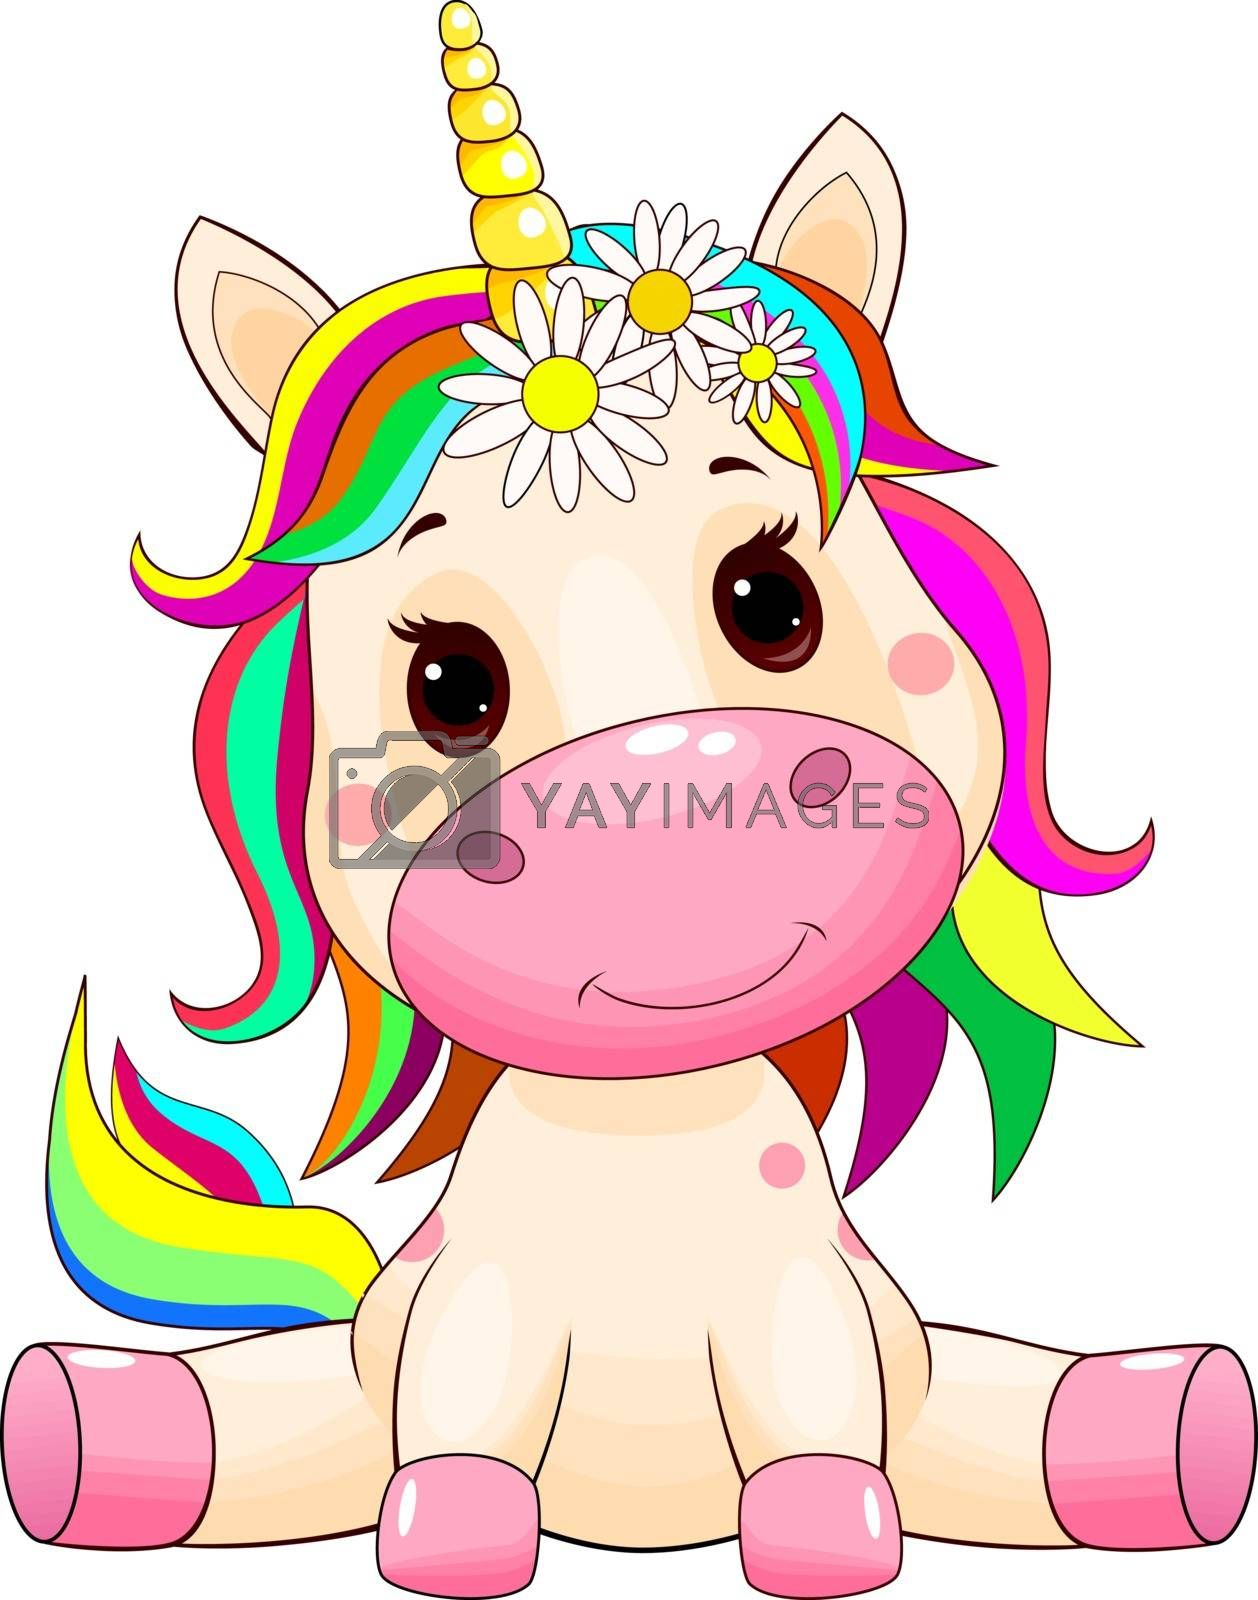 Little unicorn with a multi-colored mane and tail on white.